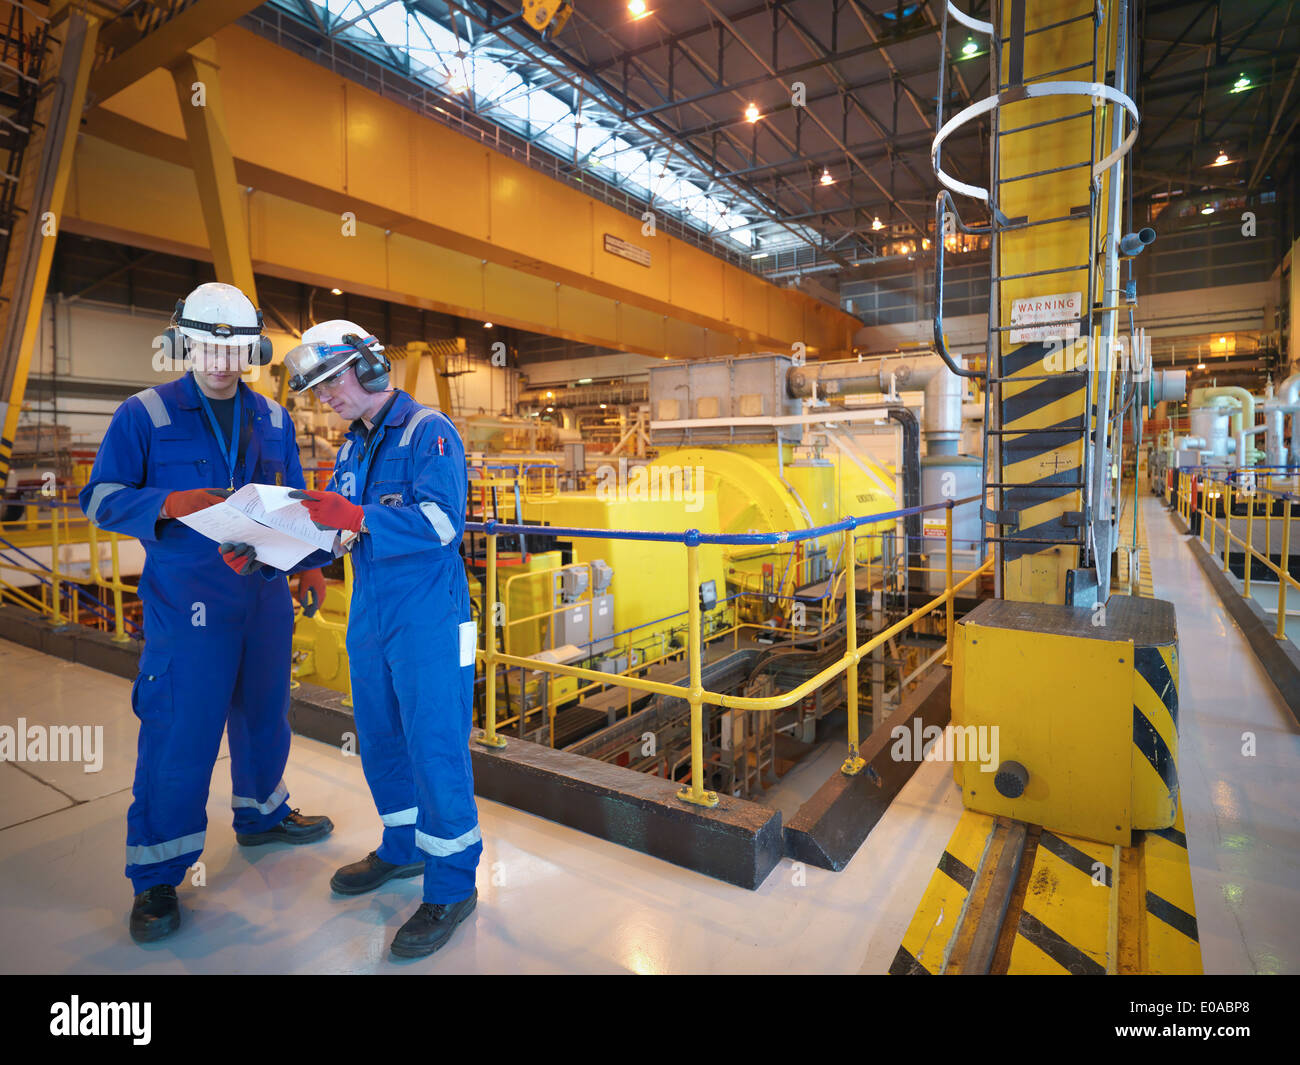 Workers reading notes in turbine hall of power station - Stock Image